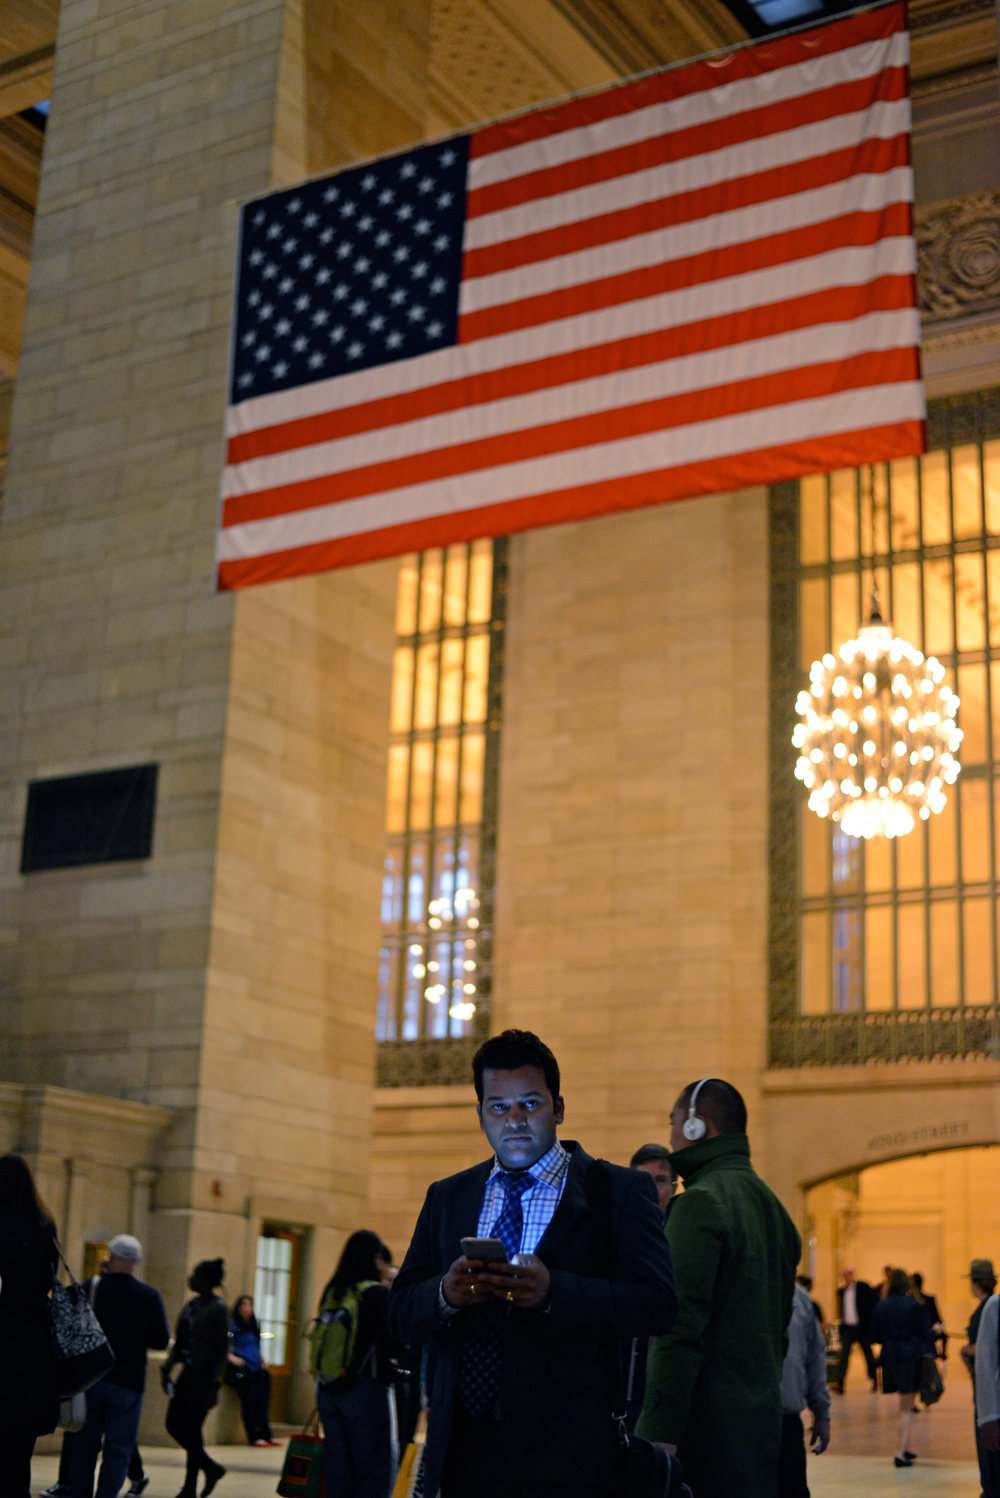 A commuter walks through Grand Central Terminal in New York on May 18, 2015.